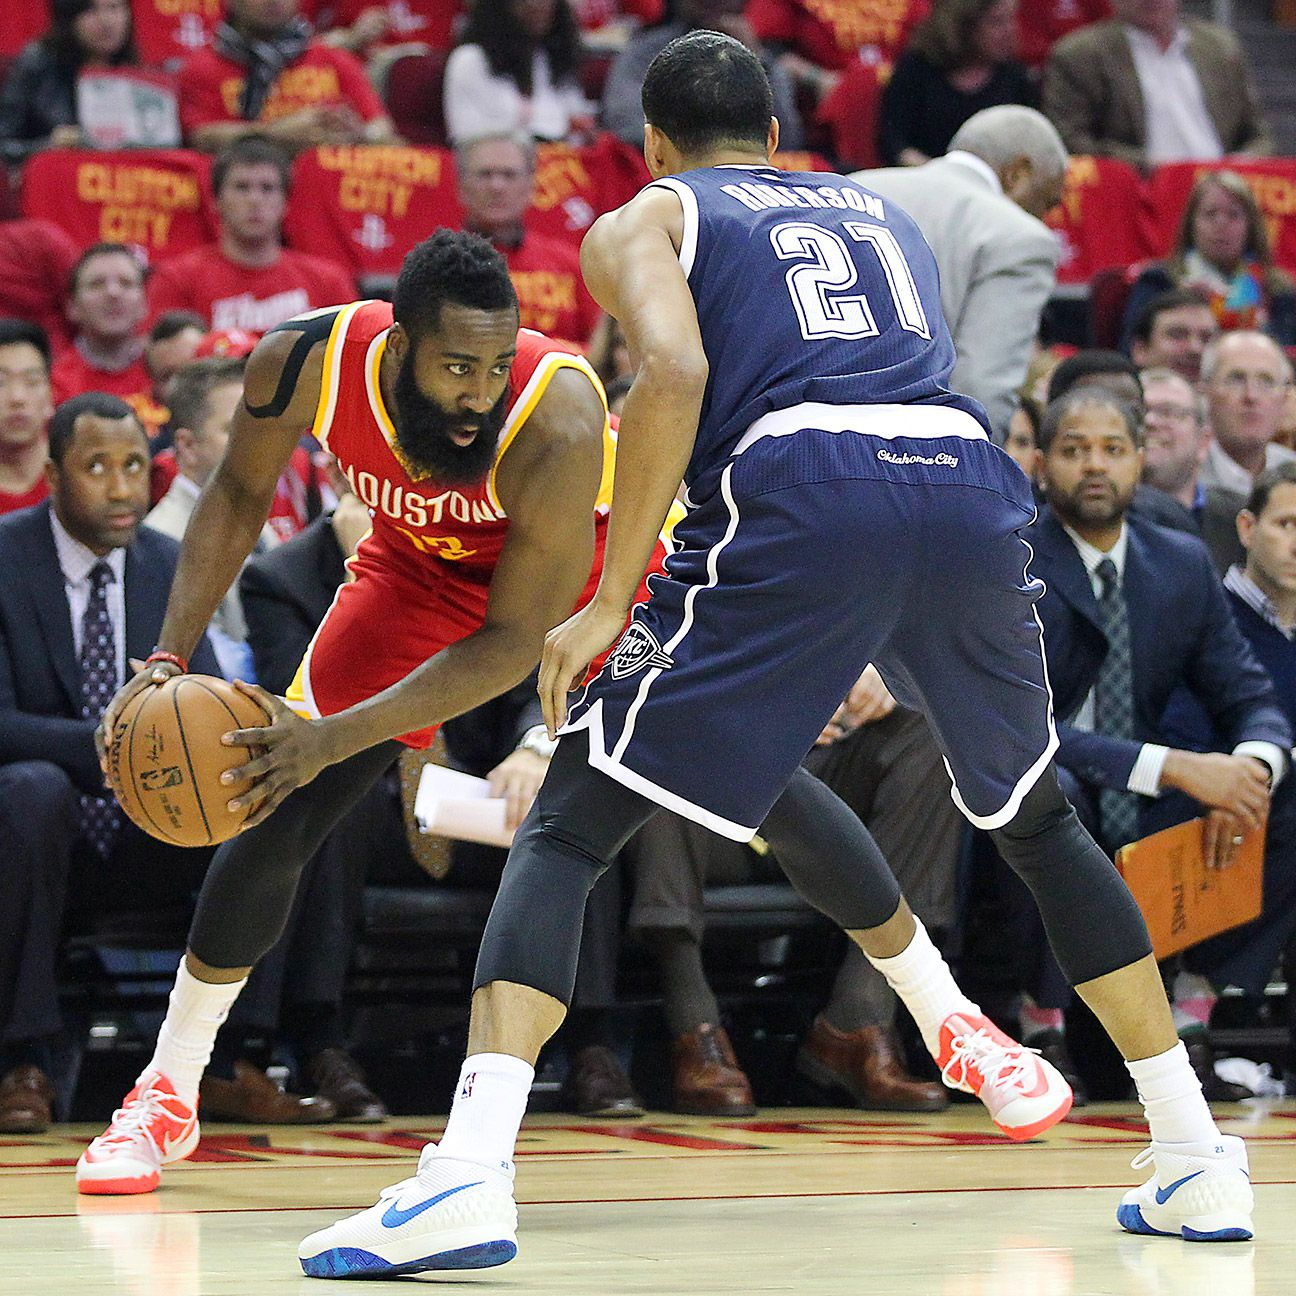 Houston Rockets Where To Watch The Upcoming Match Espn: James Harden Keeps Growing His Game For Houston Rockets